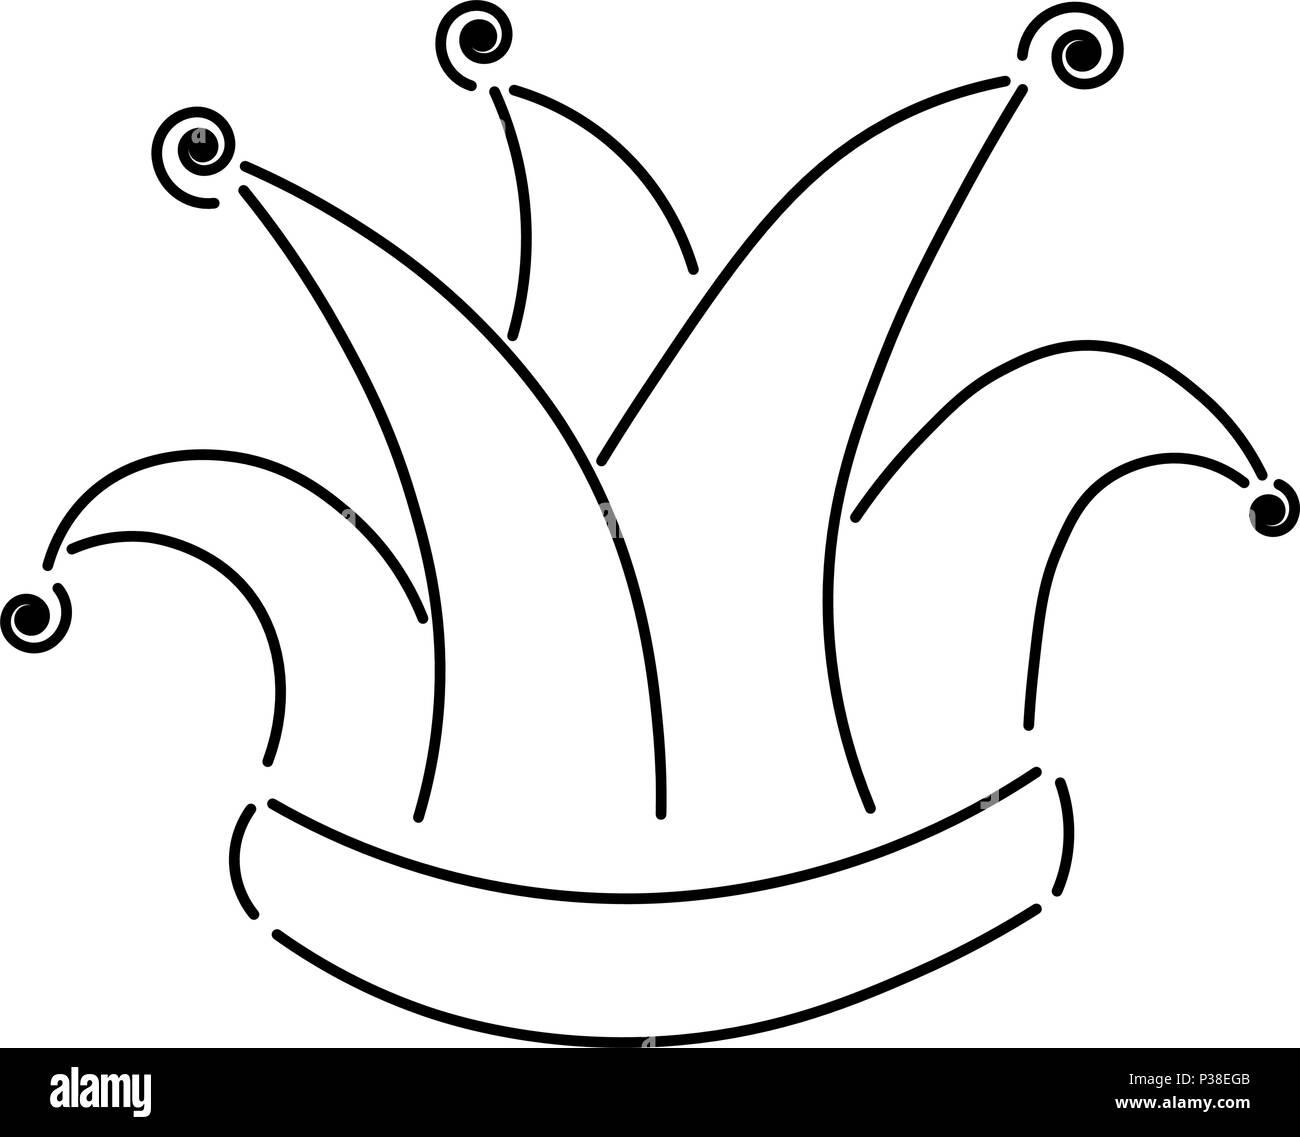 Coloriage Clown Ca.Clown Black And White Stock Photos Images Alamy